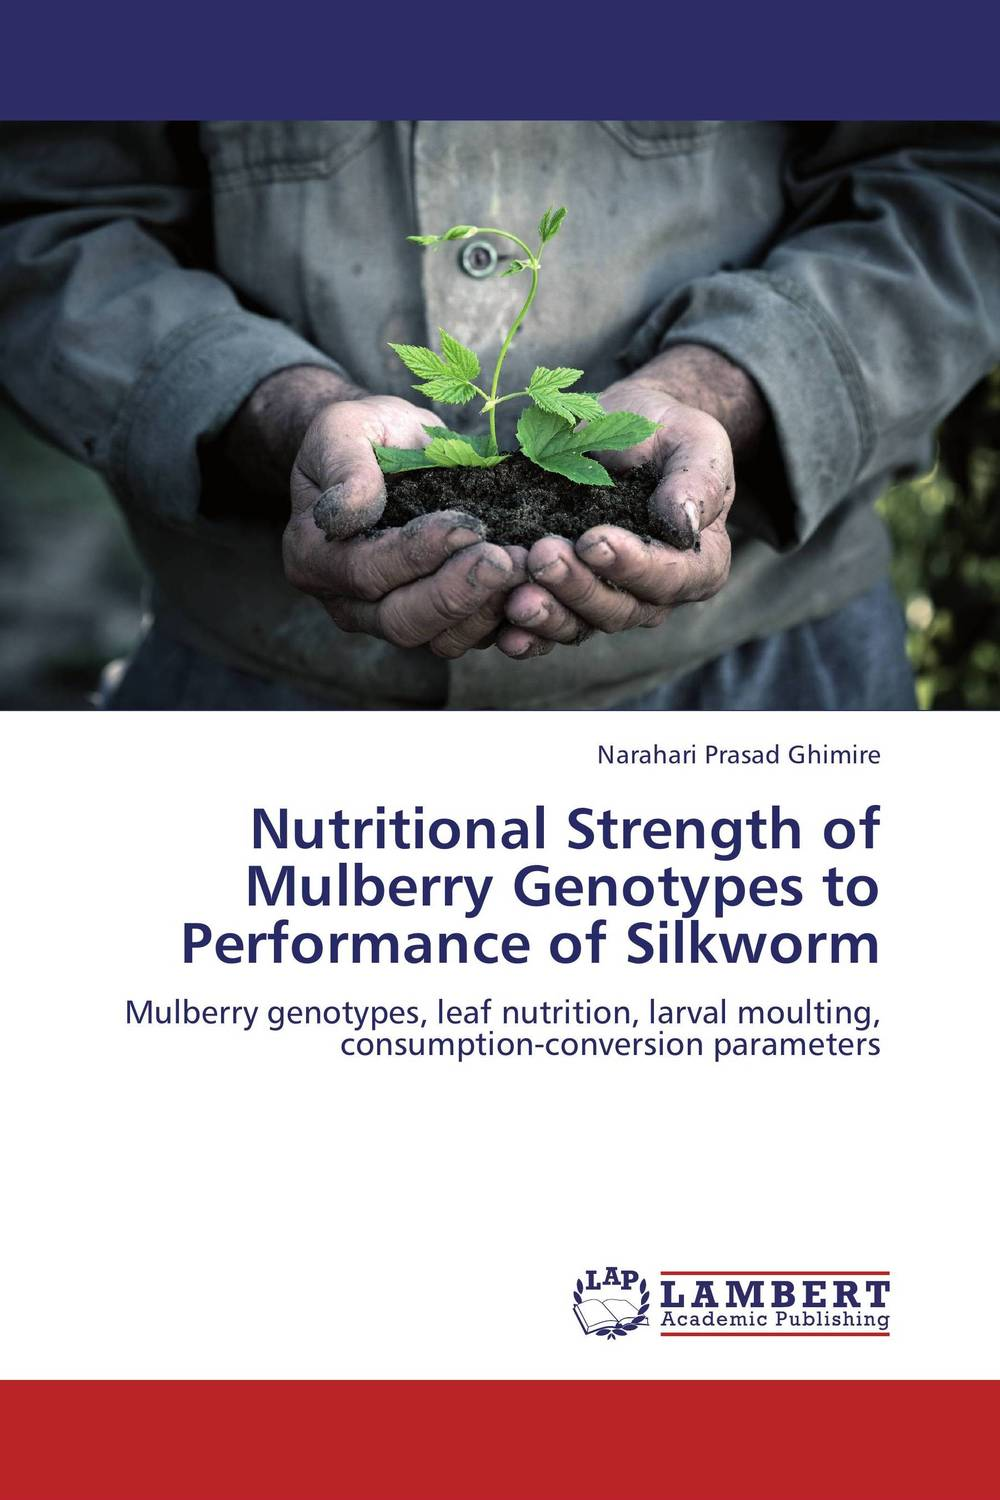 Nutritional Strength of Mulberry Genotypes to Performance of Silkworm the meadow vale ponies mulberry and the summer show